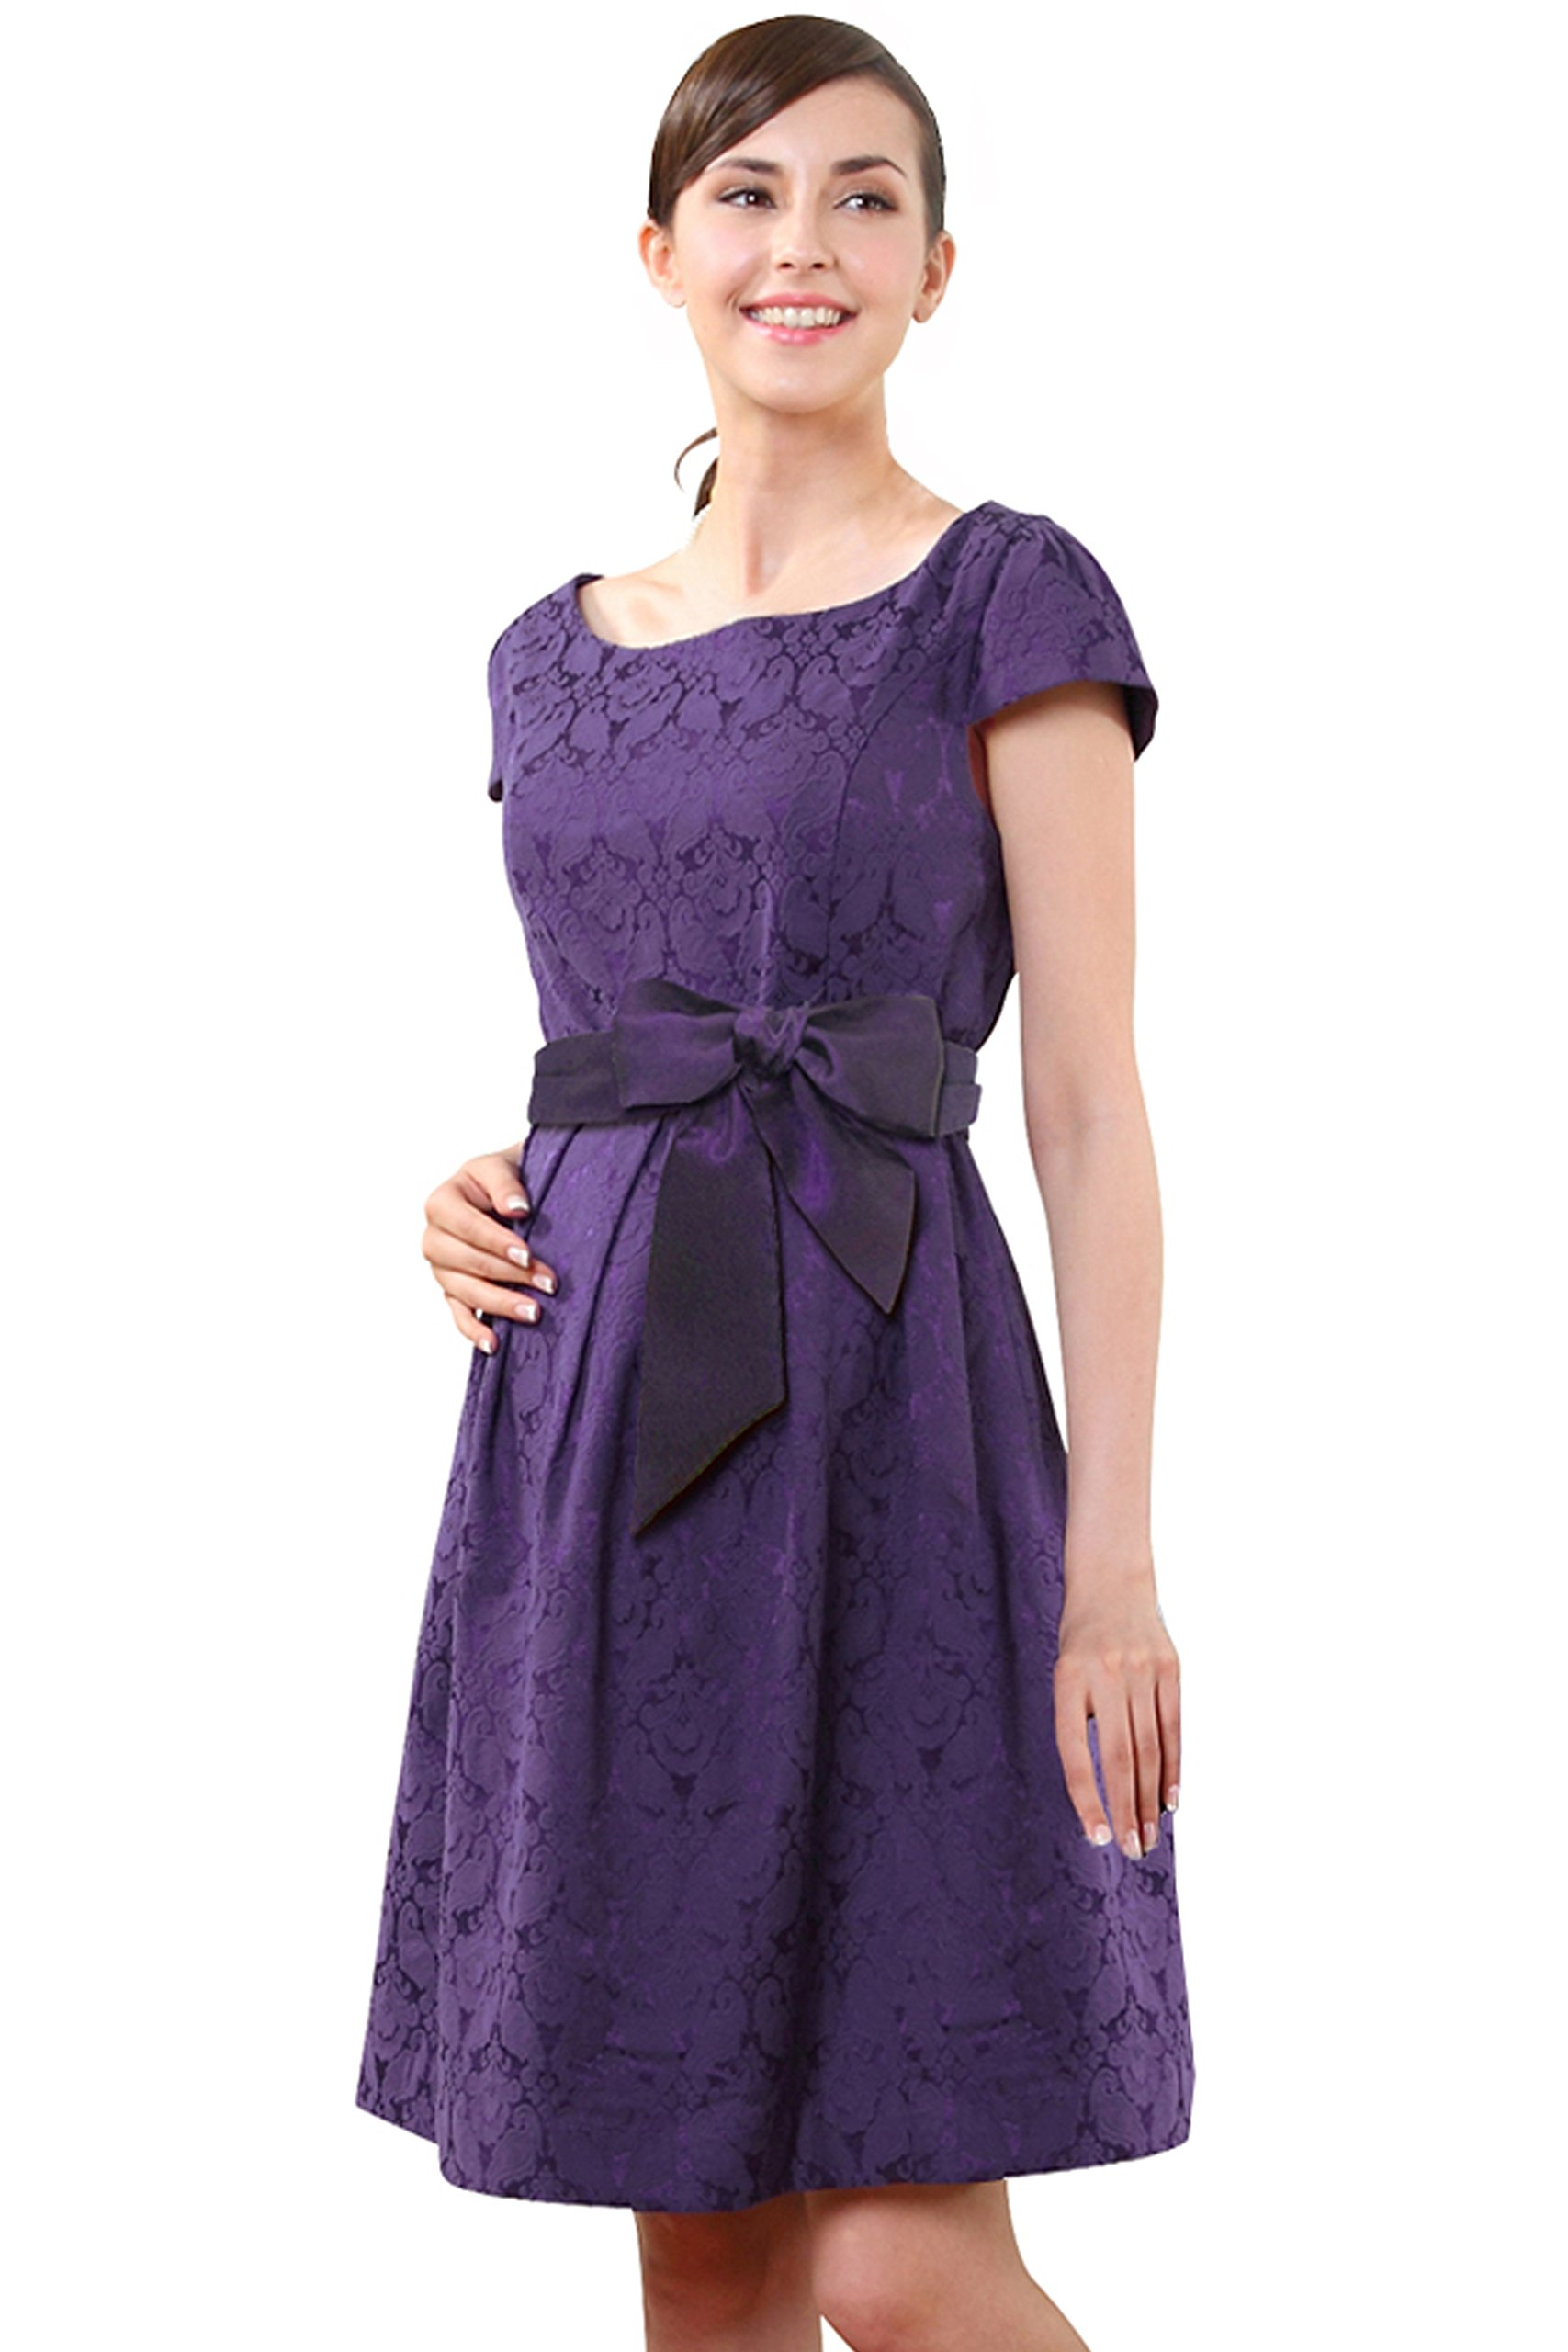 Sweet Mommy Maternity and Nursing Short Sleeve Waist Tie Stretch Jacquard Dress Purple, M